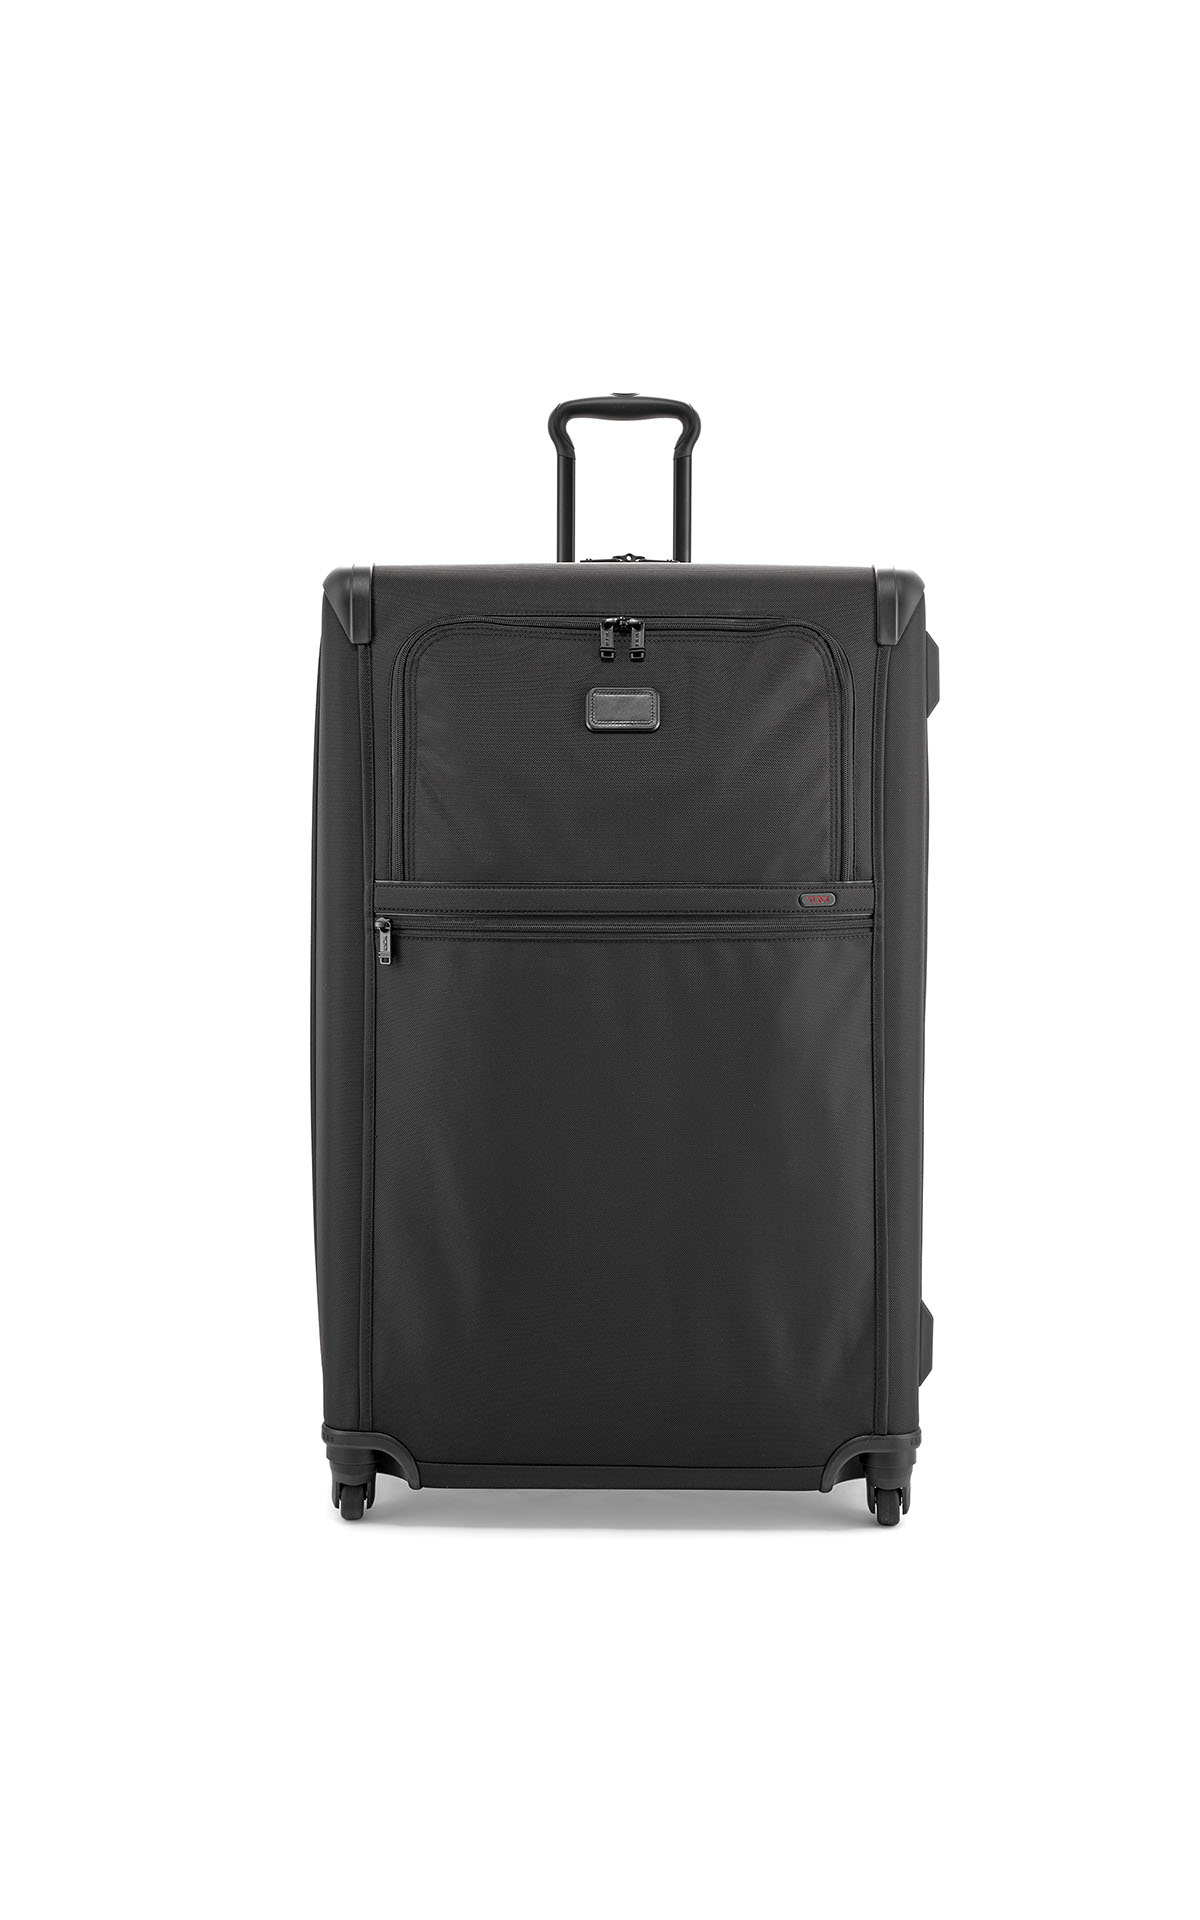 Tumi ww trip exp 4whl p/c at The Bicester Village Shopping Collection